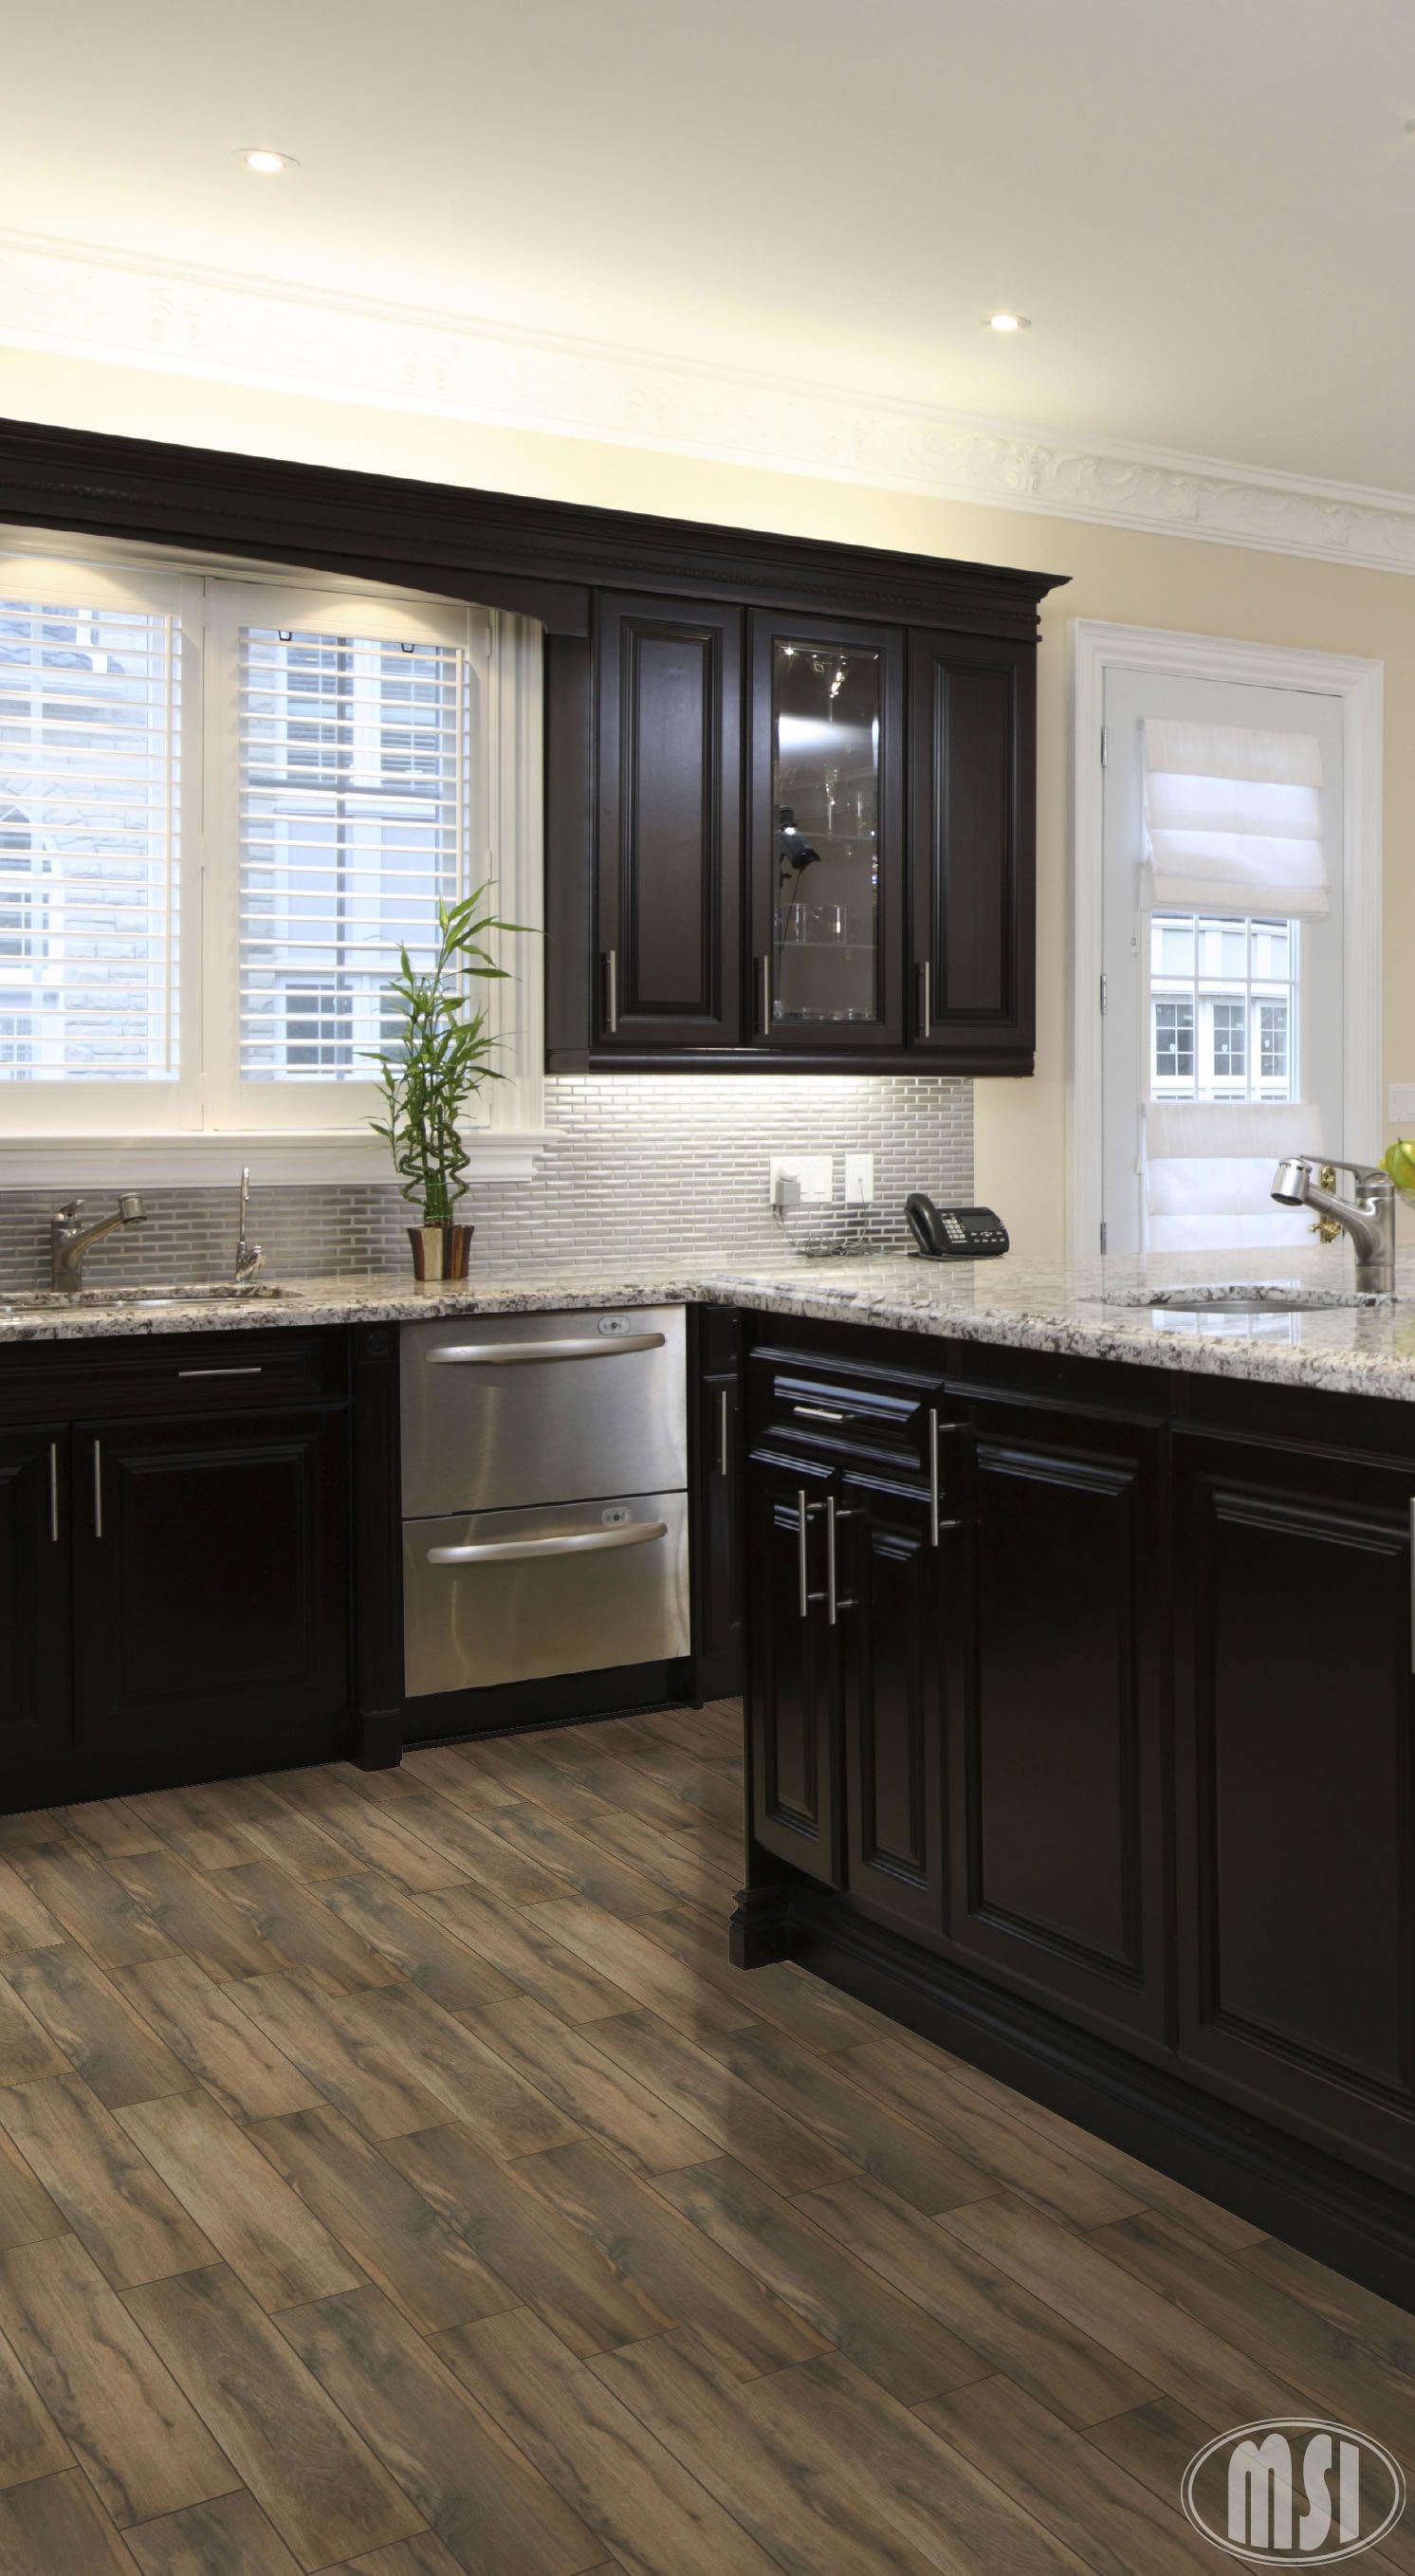 Pictures of kitchen cabinets and granite countertops - Moon White Granite Dark Kitchen Cabinets